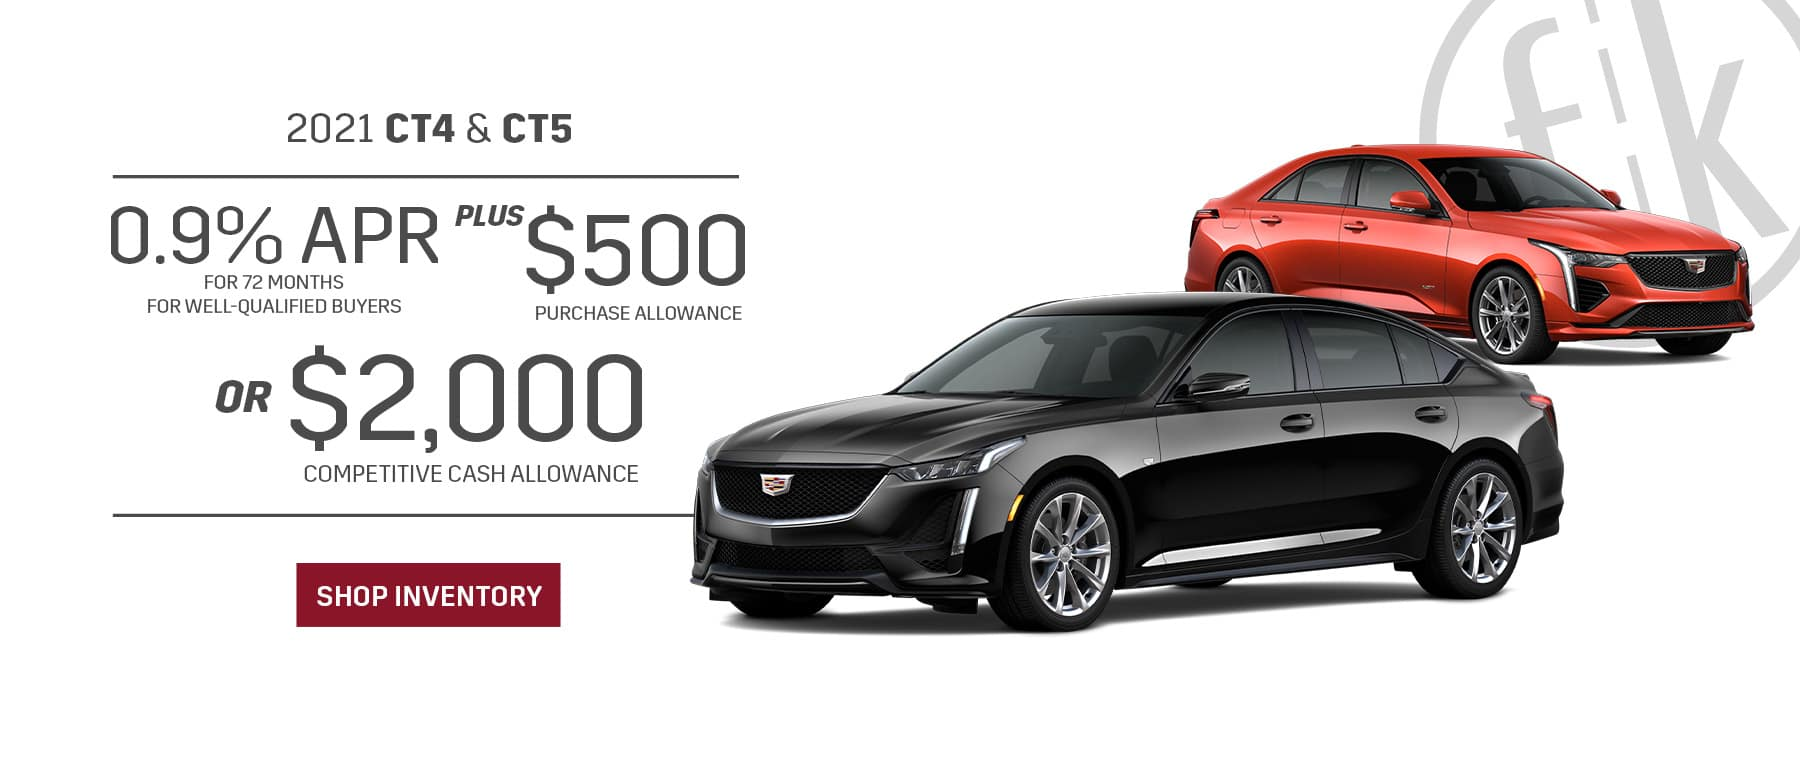 2021 CT4 & CT5 0.9% for 72 mos. PLUS $500 Purchase Allowance OR $2,000 Competitive Cash Allowance